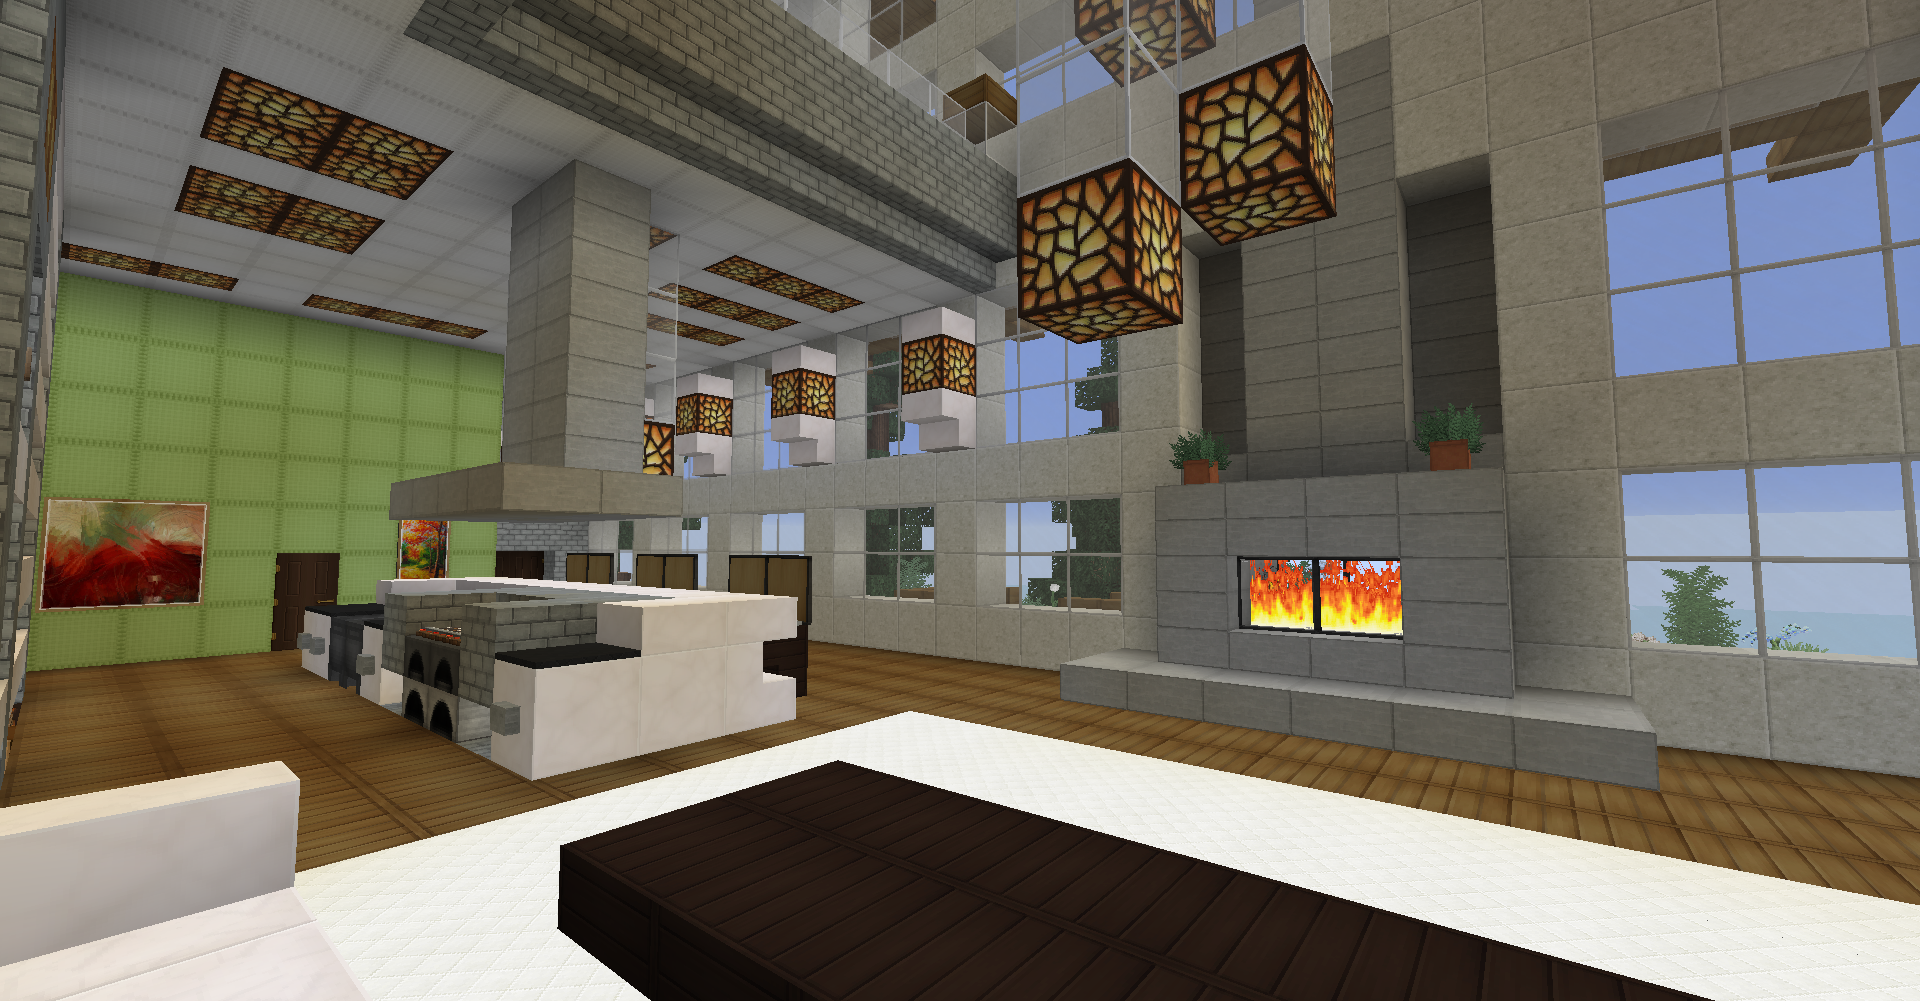 Minecraft survival modern house interior living room kitchen two way fireplace large windows